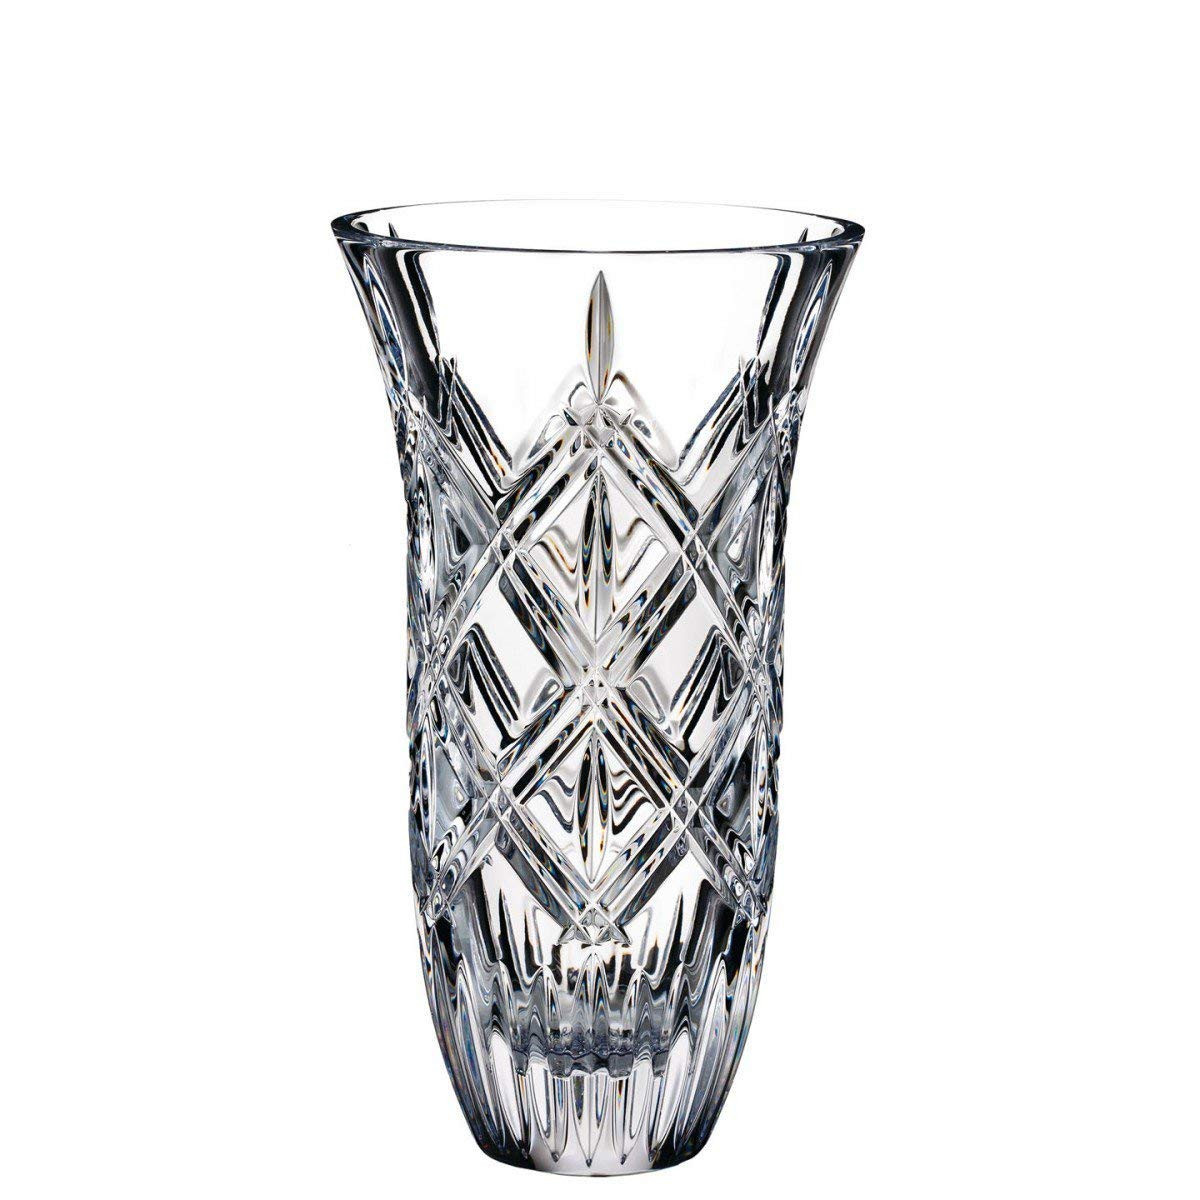 marquis by waterford vase sparkle of amazon com marquis by waterford lacey vase 9 home kitchen within 71gkvf62hsl sl1200